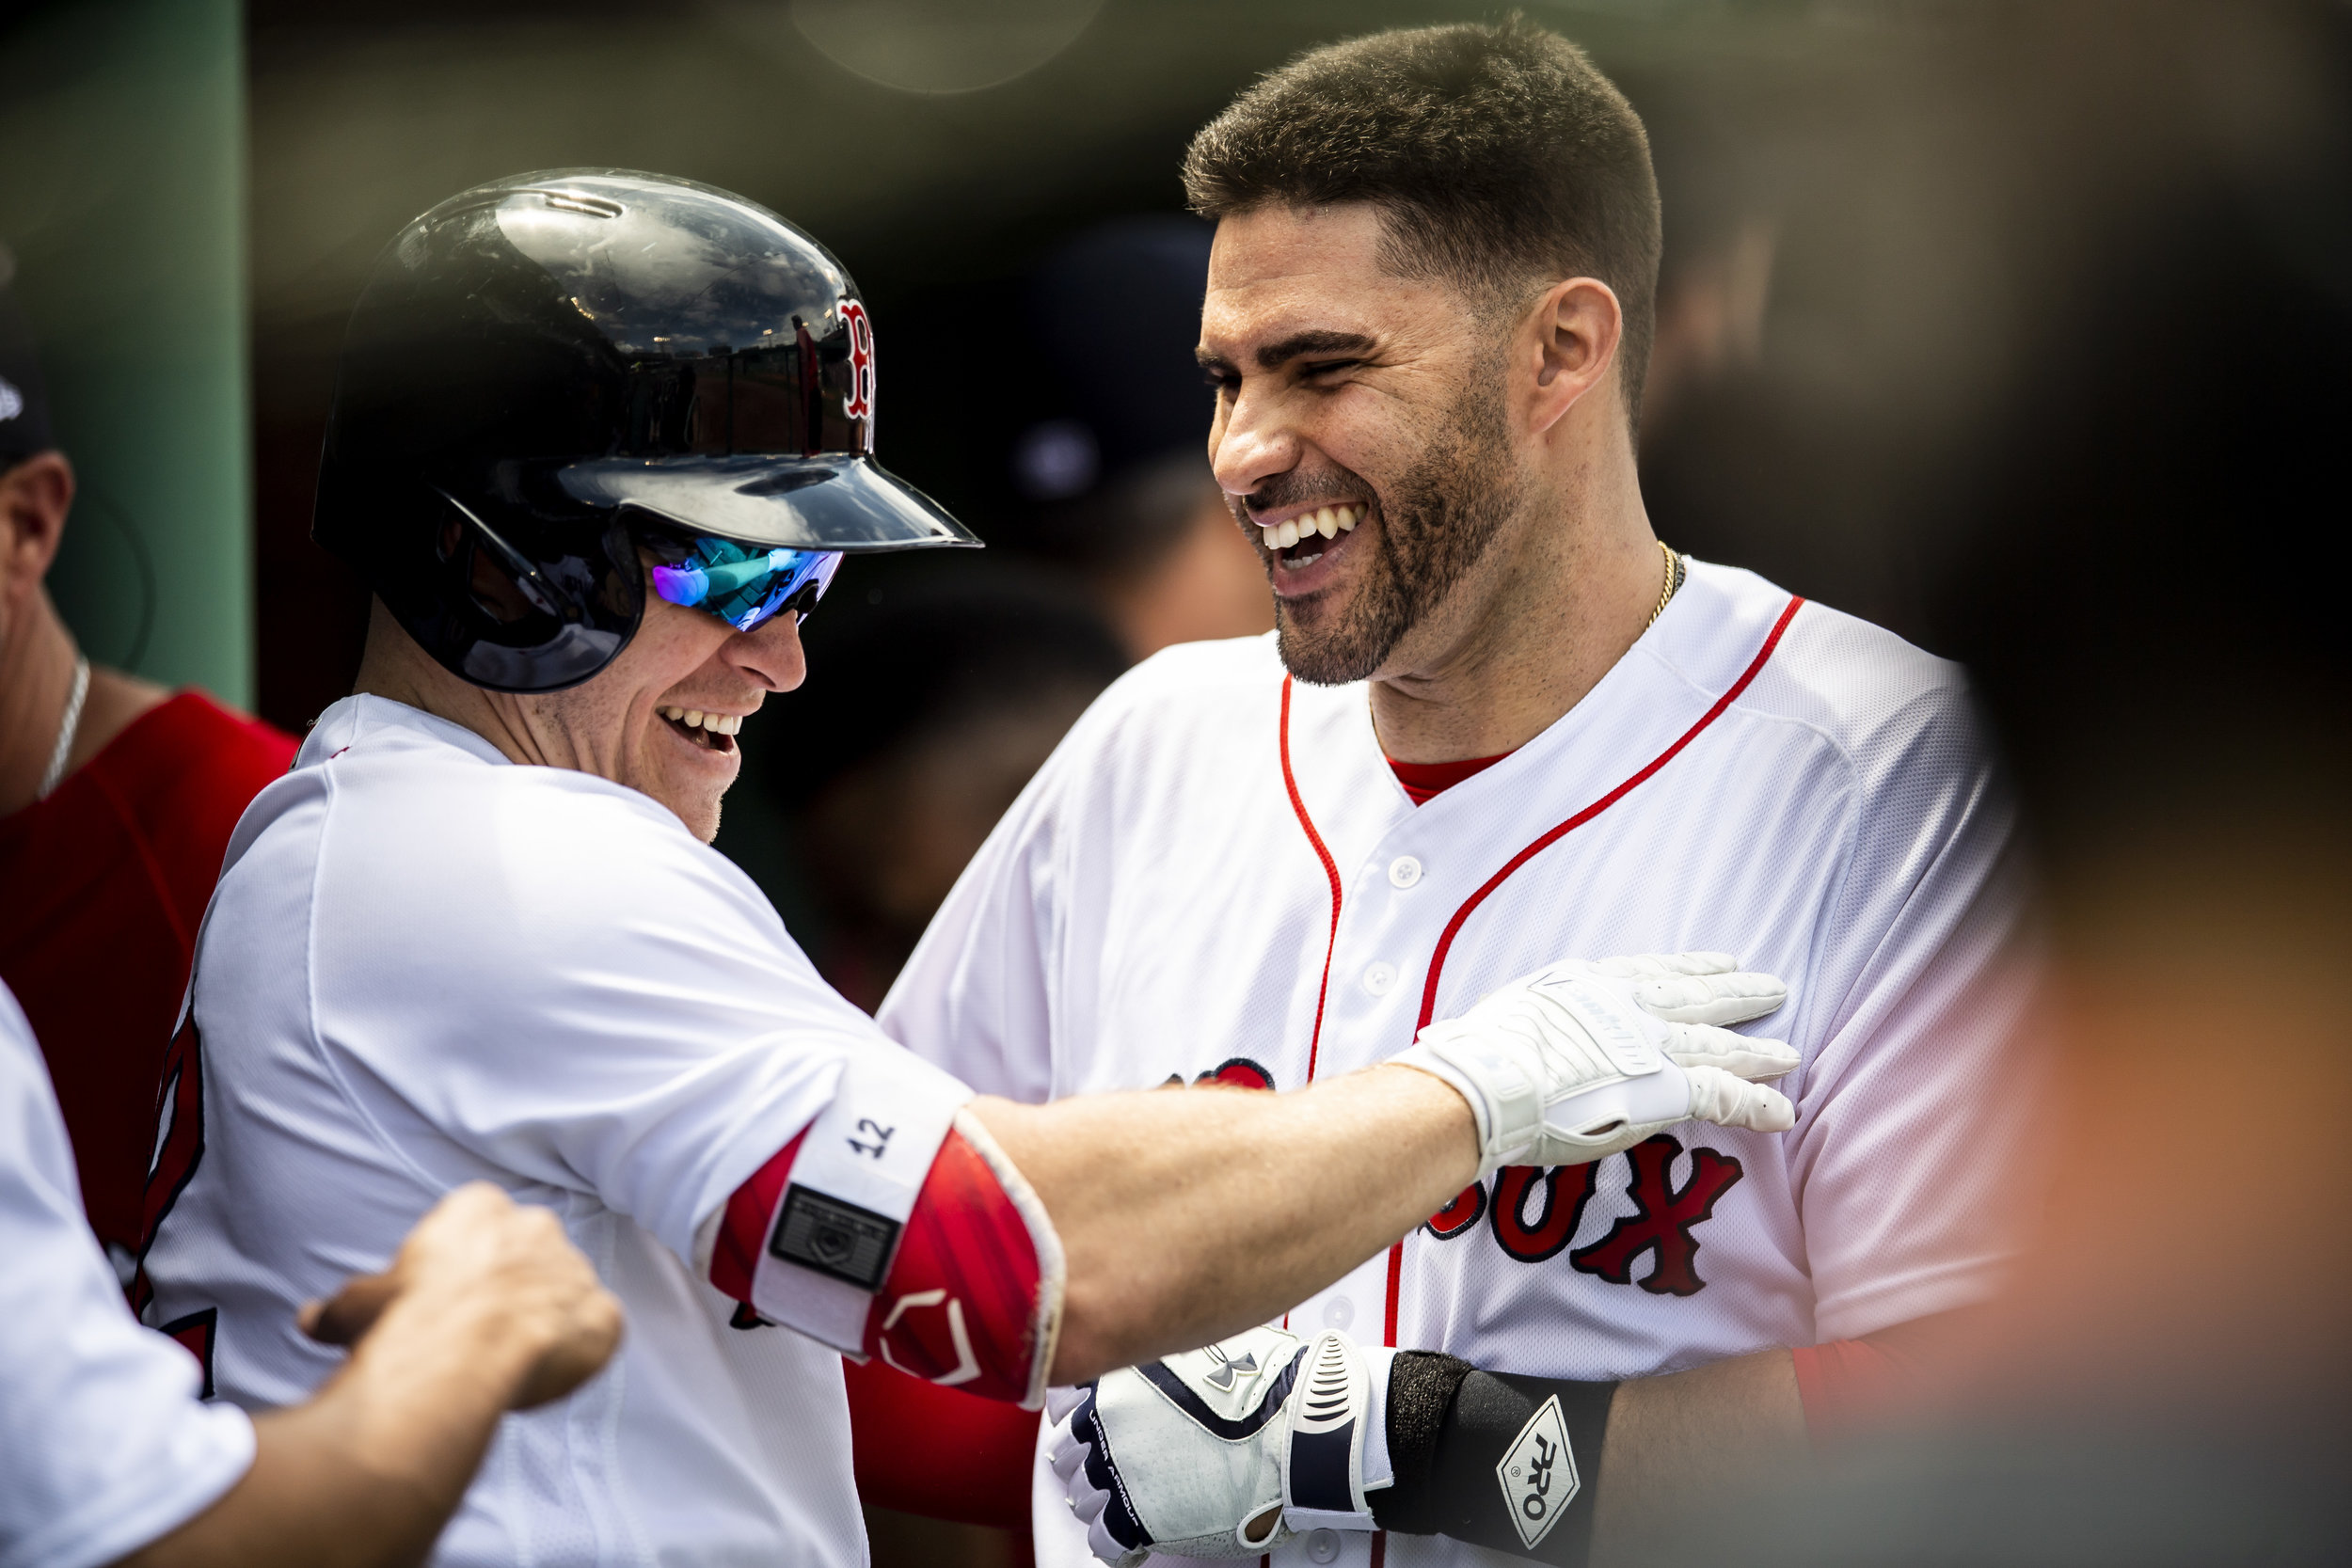 May 20, 2018, Boston, MA: Boston Red Sox J.D. Martinez hugs Boston Red Sox shortstop Brock Holt in the dugout after hitting a home run as the Boston Red Sox face the Baltimore Orioles at Fenway Park in Boston, Massachusetts on Saturday, May 20, 2018. (Photo by Matthew Thomas/Boston Red Sox)